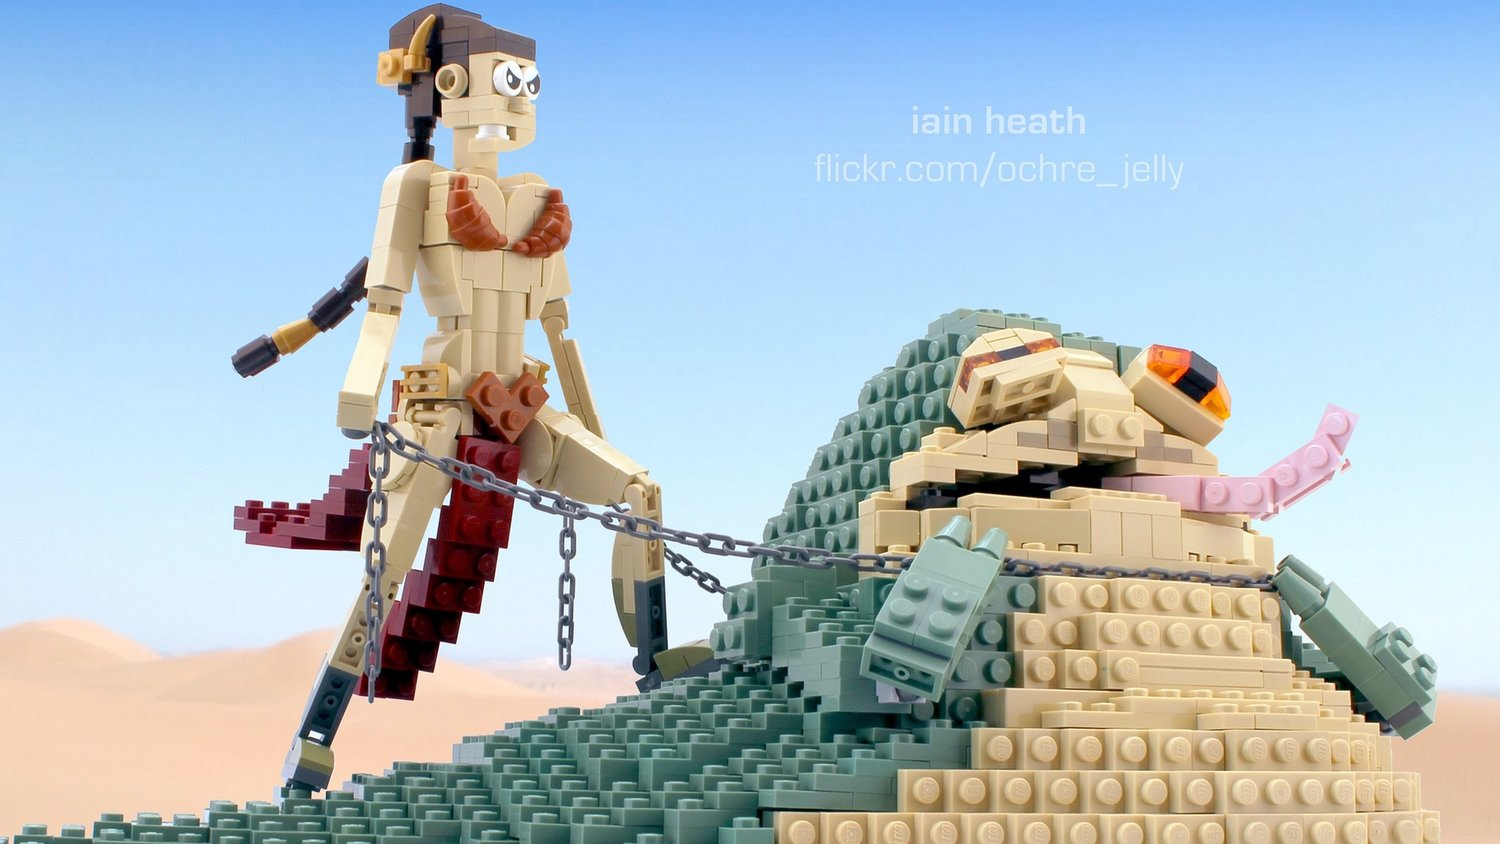 Princess Leia Amusingly Chokes Out Jabba the Hutt in Star Wars LEGO Build